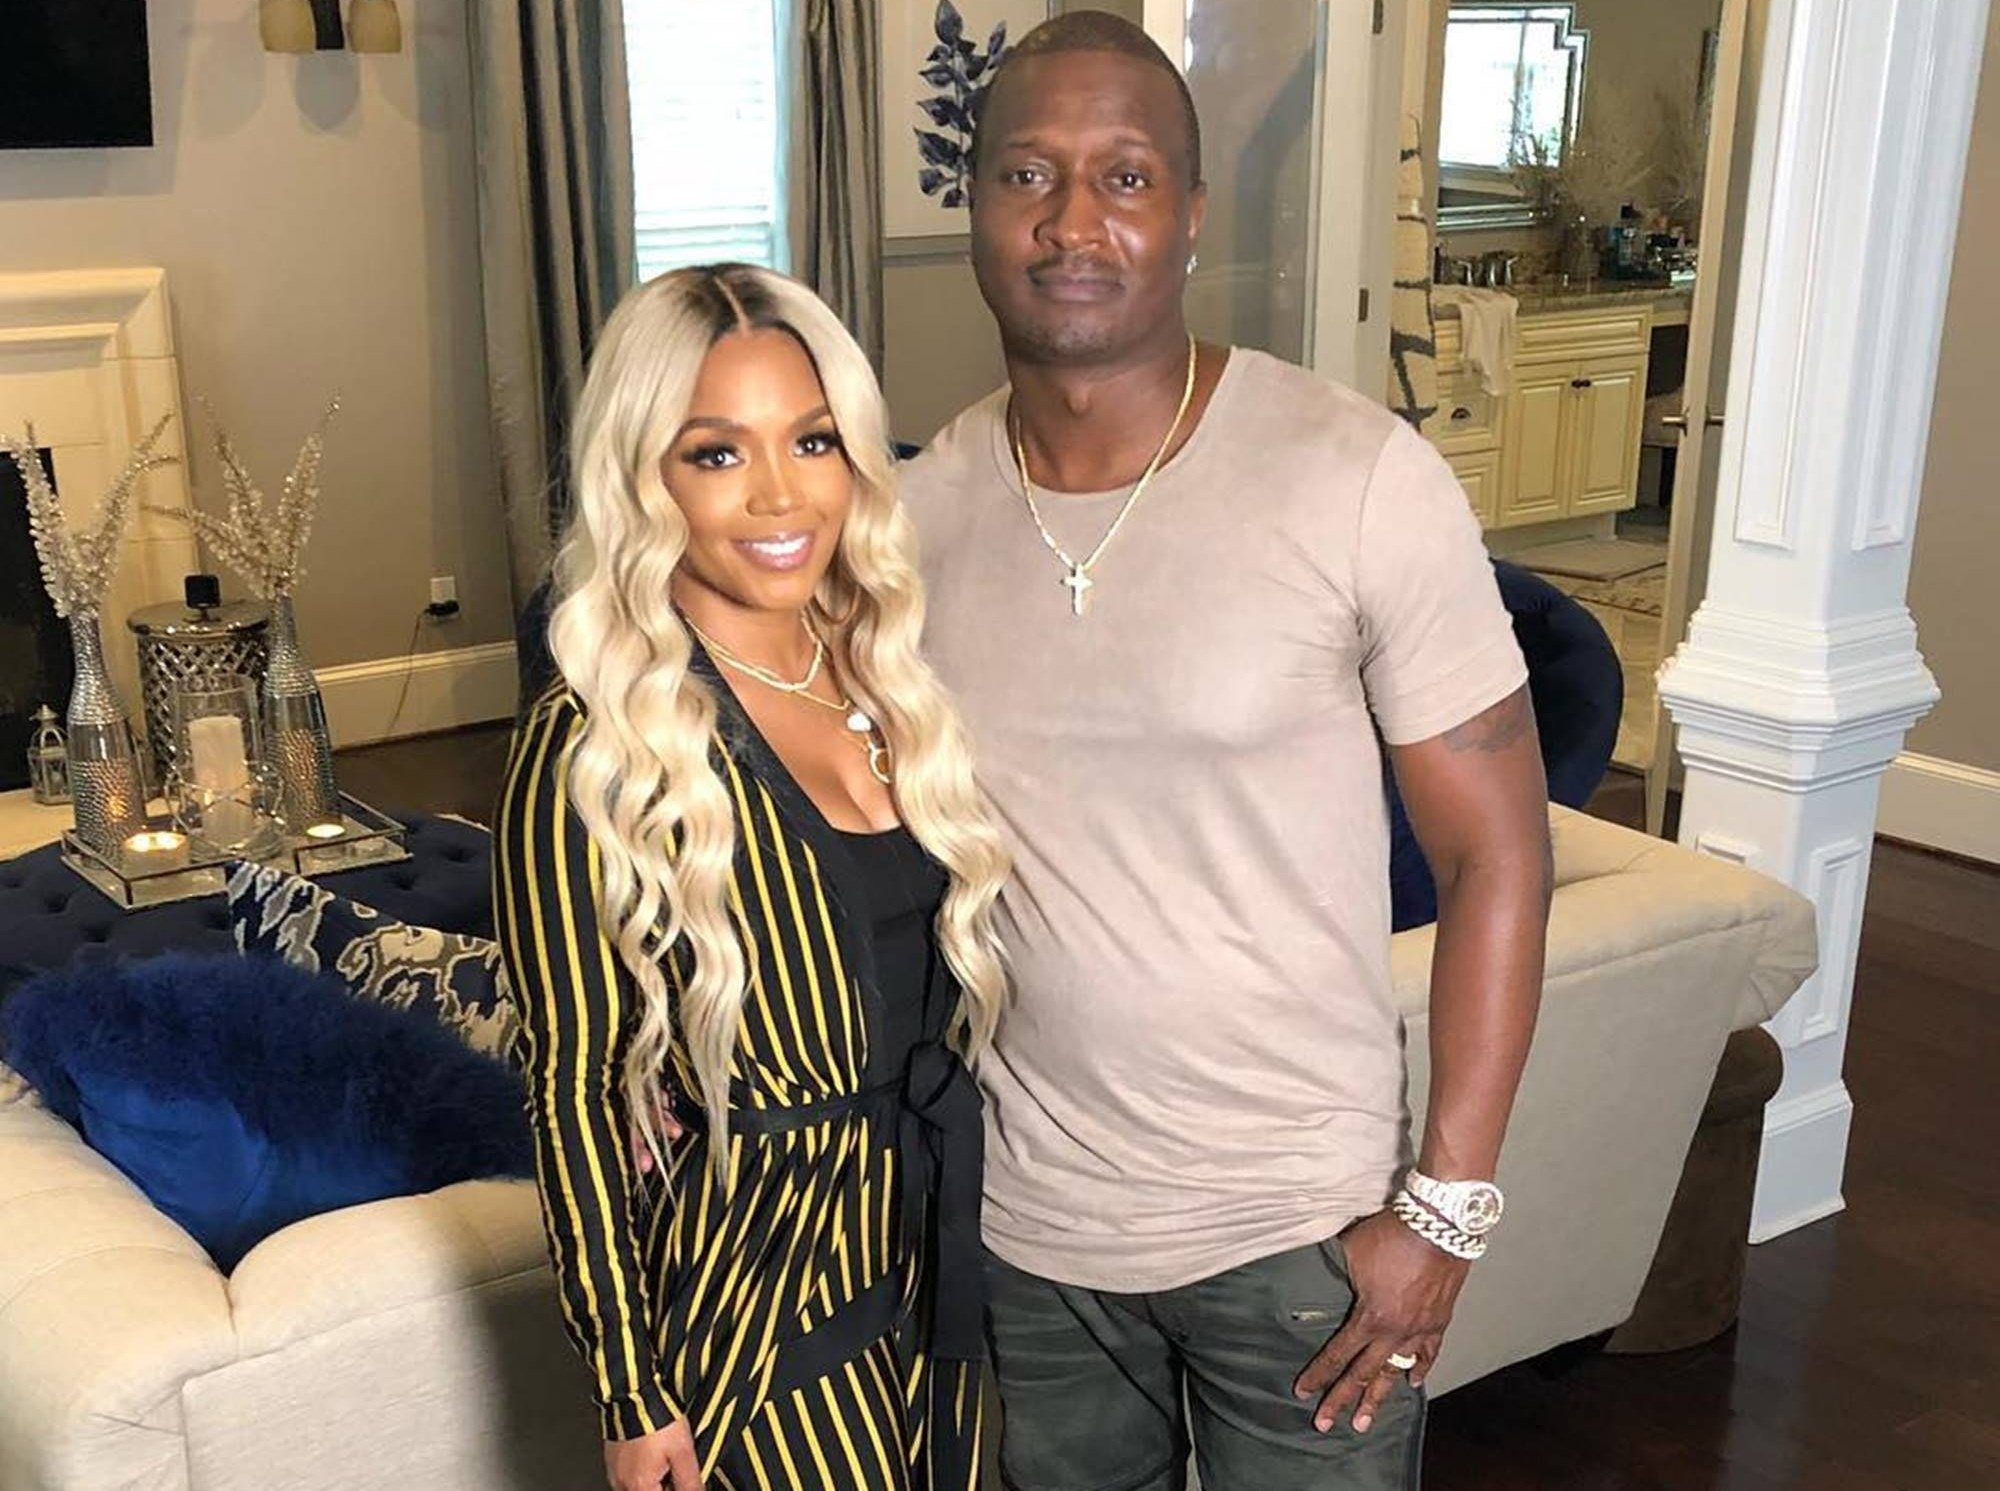 Rasheeda Frost Films At Her Pressed Boutique – Check Out The Clip She Shared